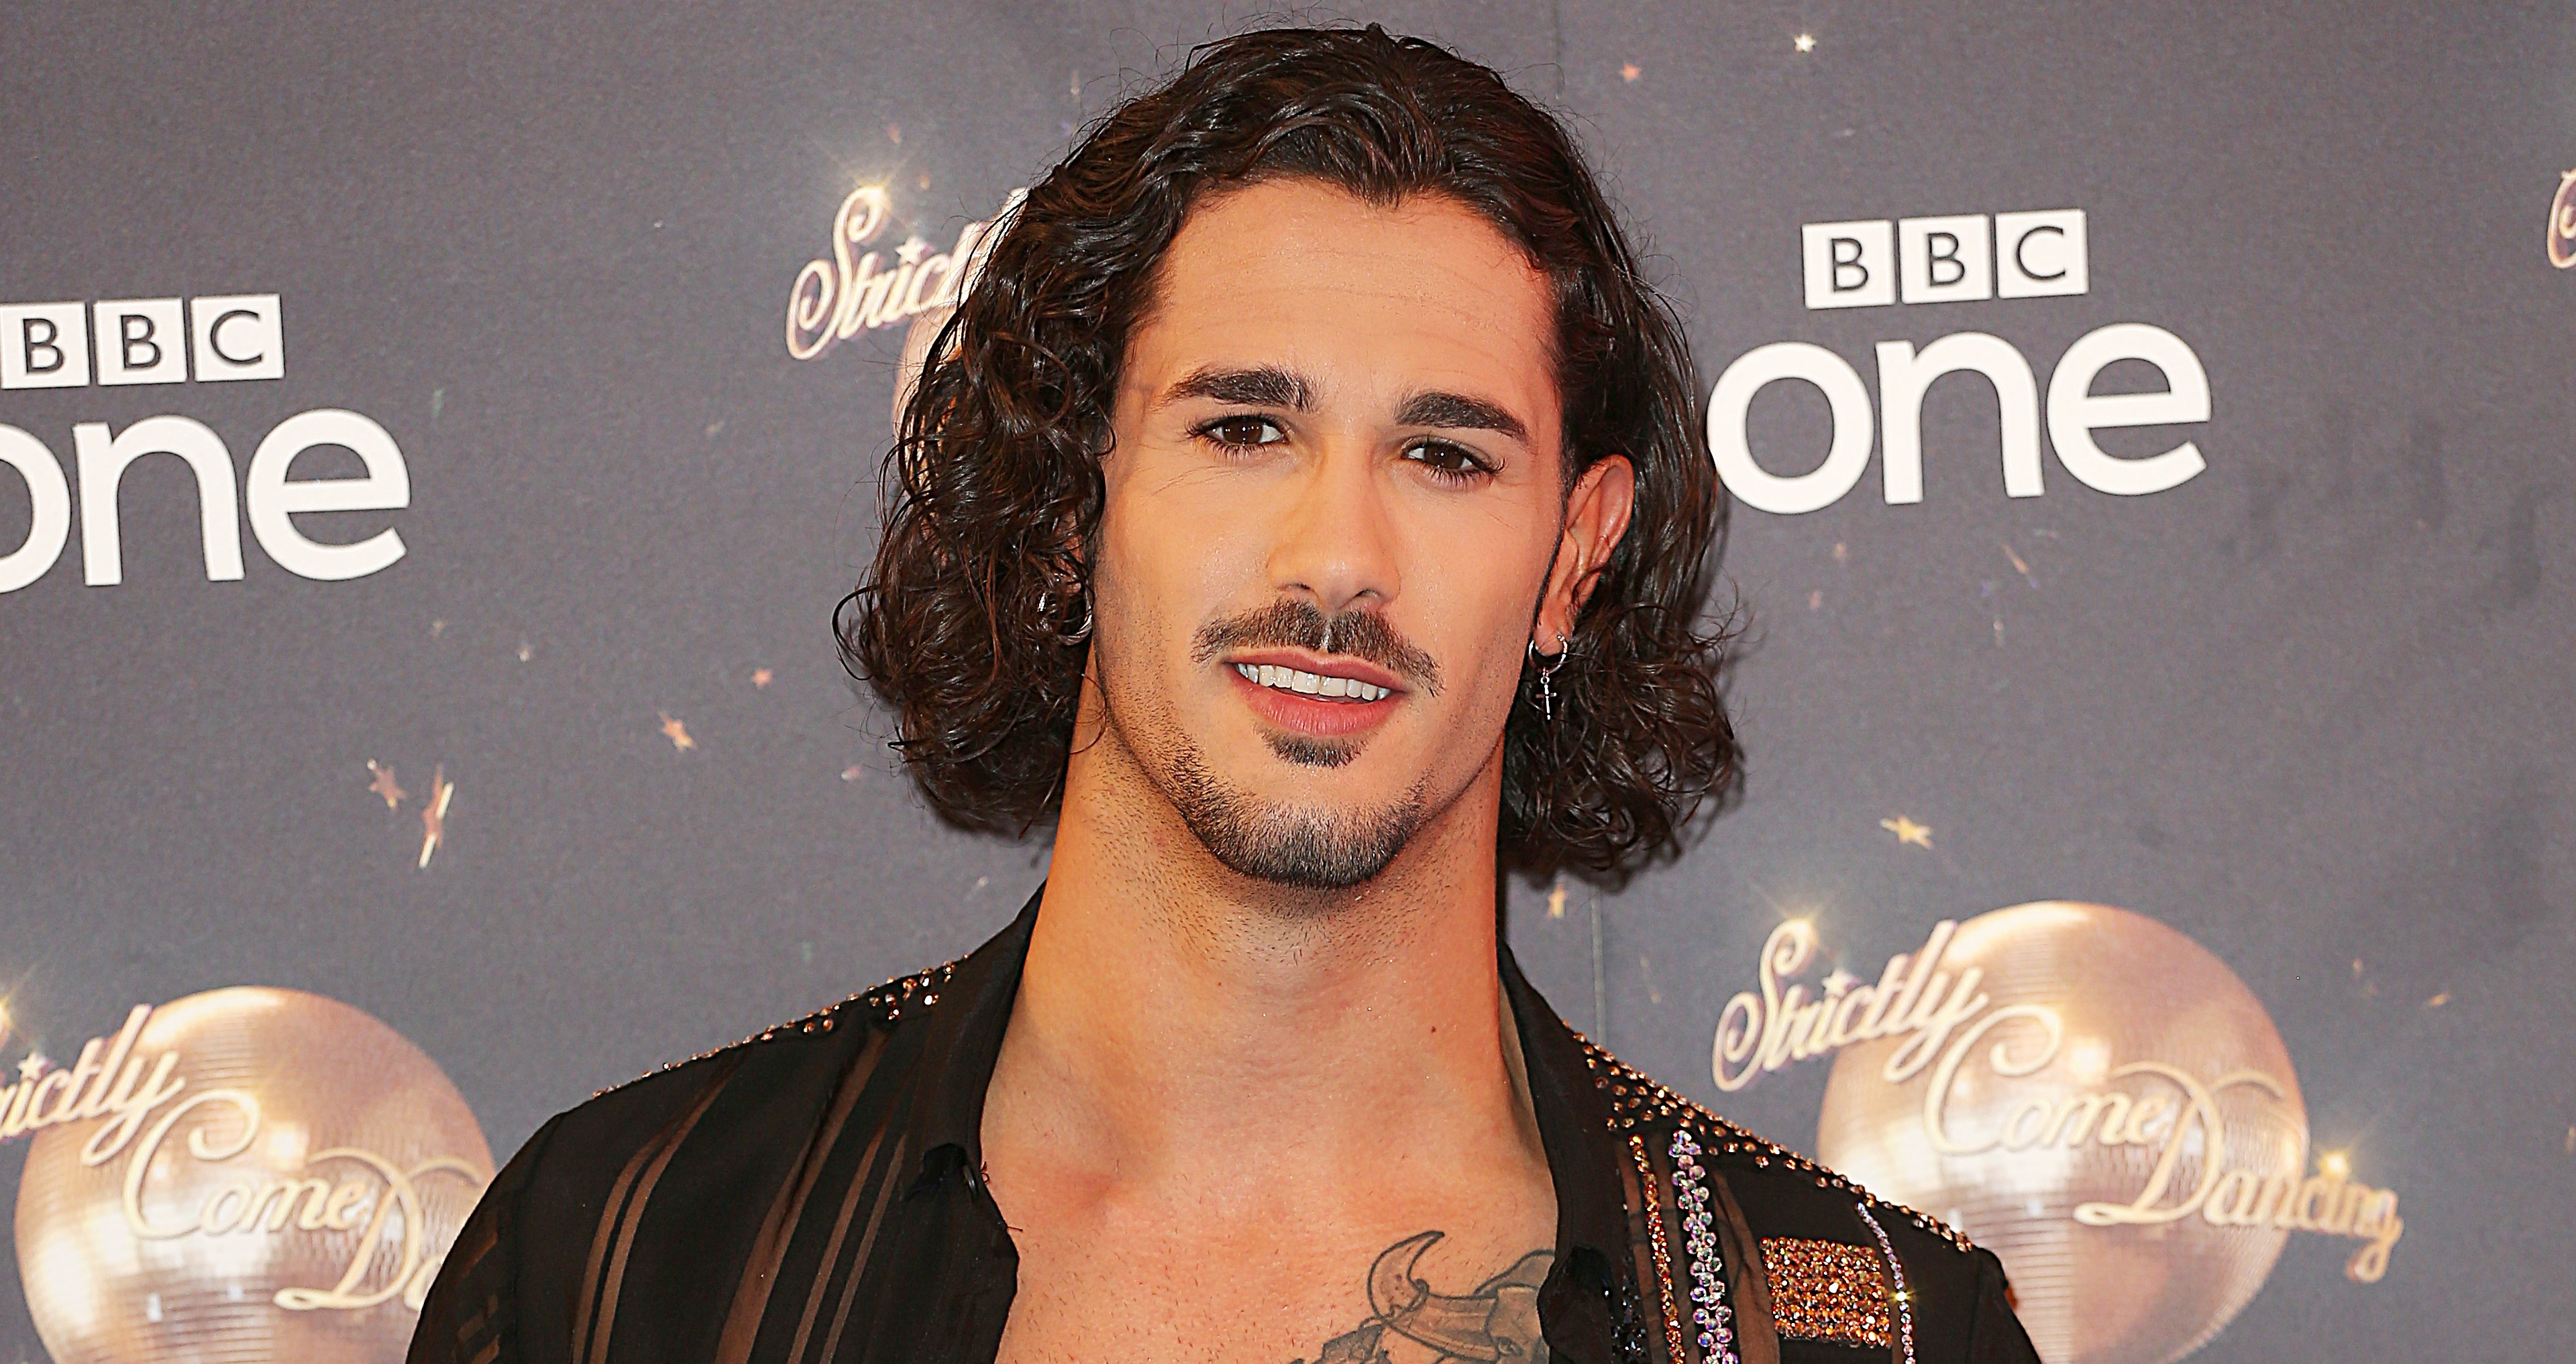 Strictly's Graziano Di Prima proposes to girlfriend live on stage